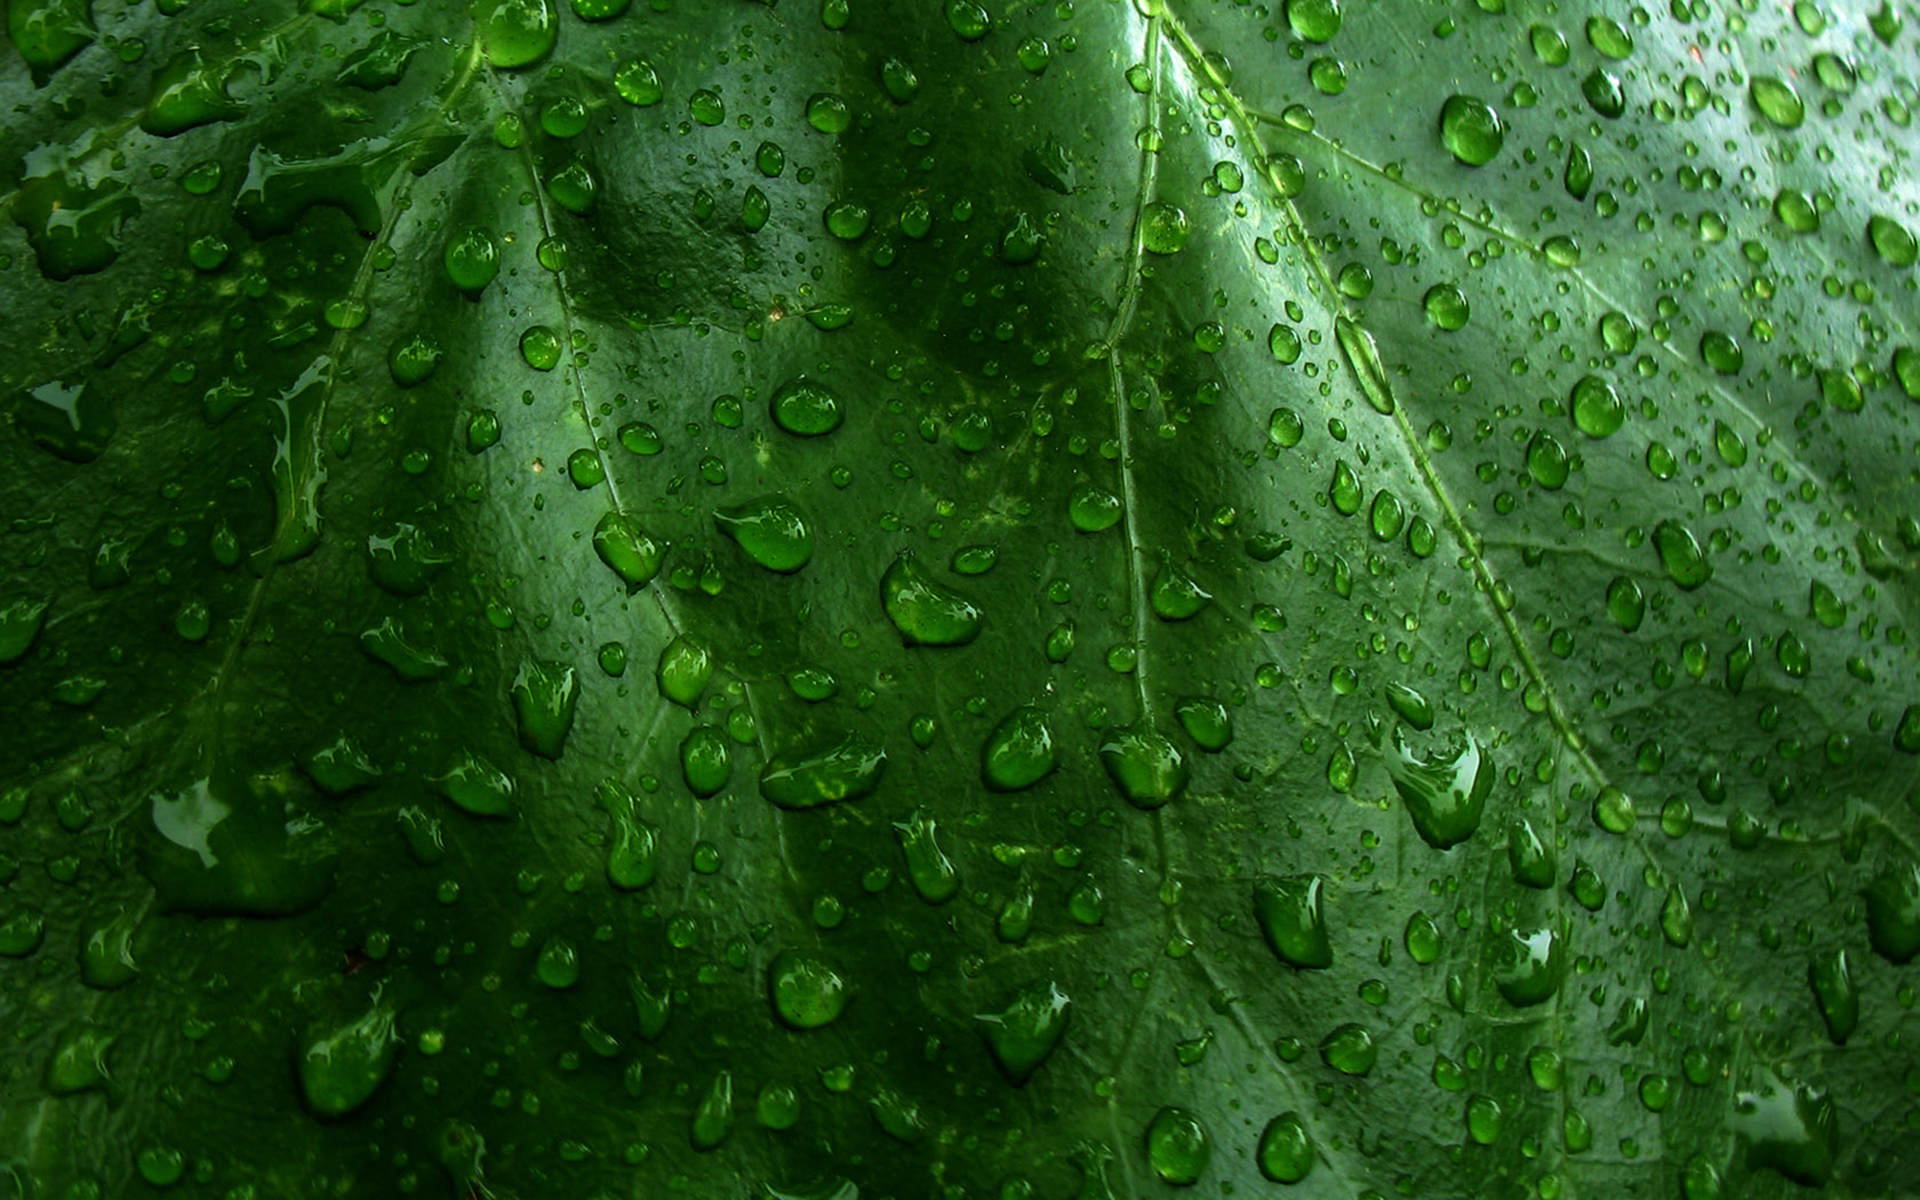 Earth - Water Drop  Raindrops Ribs Plant Wallpaper